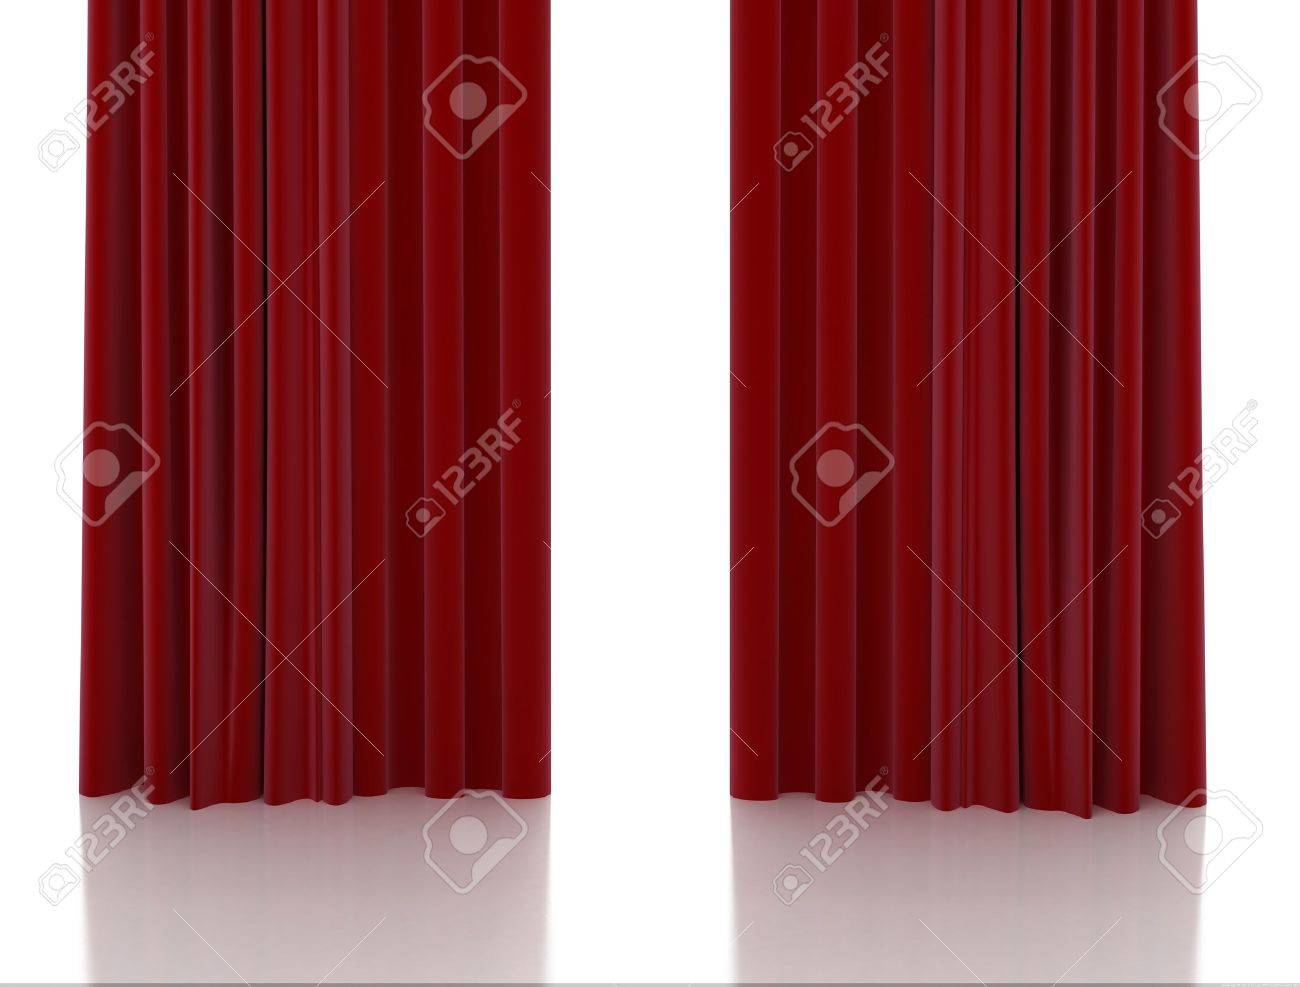 Red curtain - 10782137